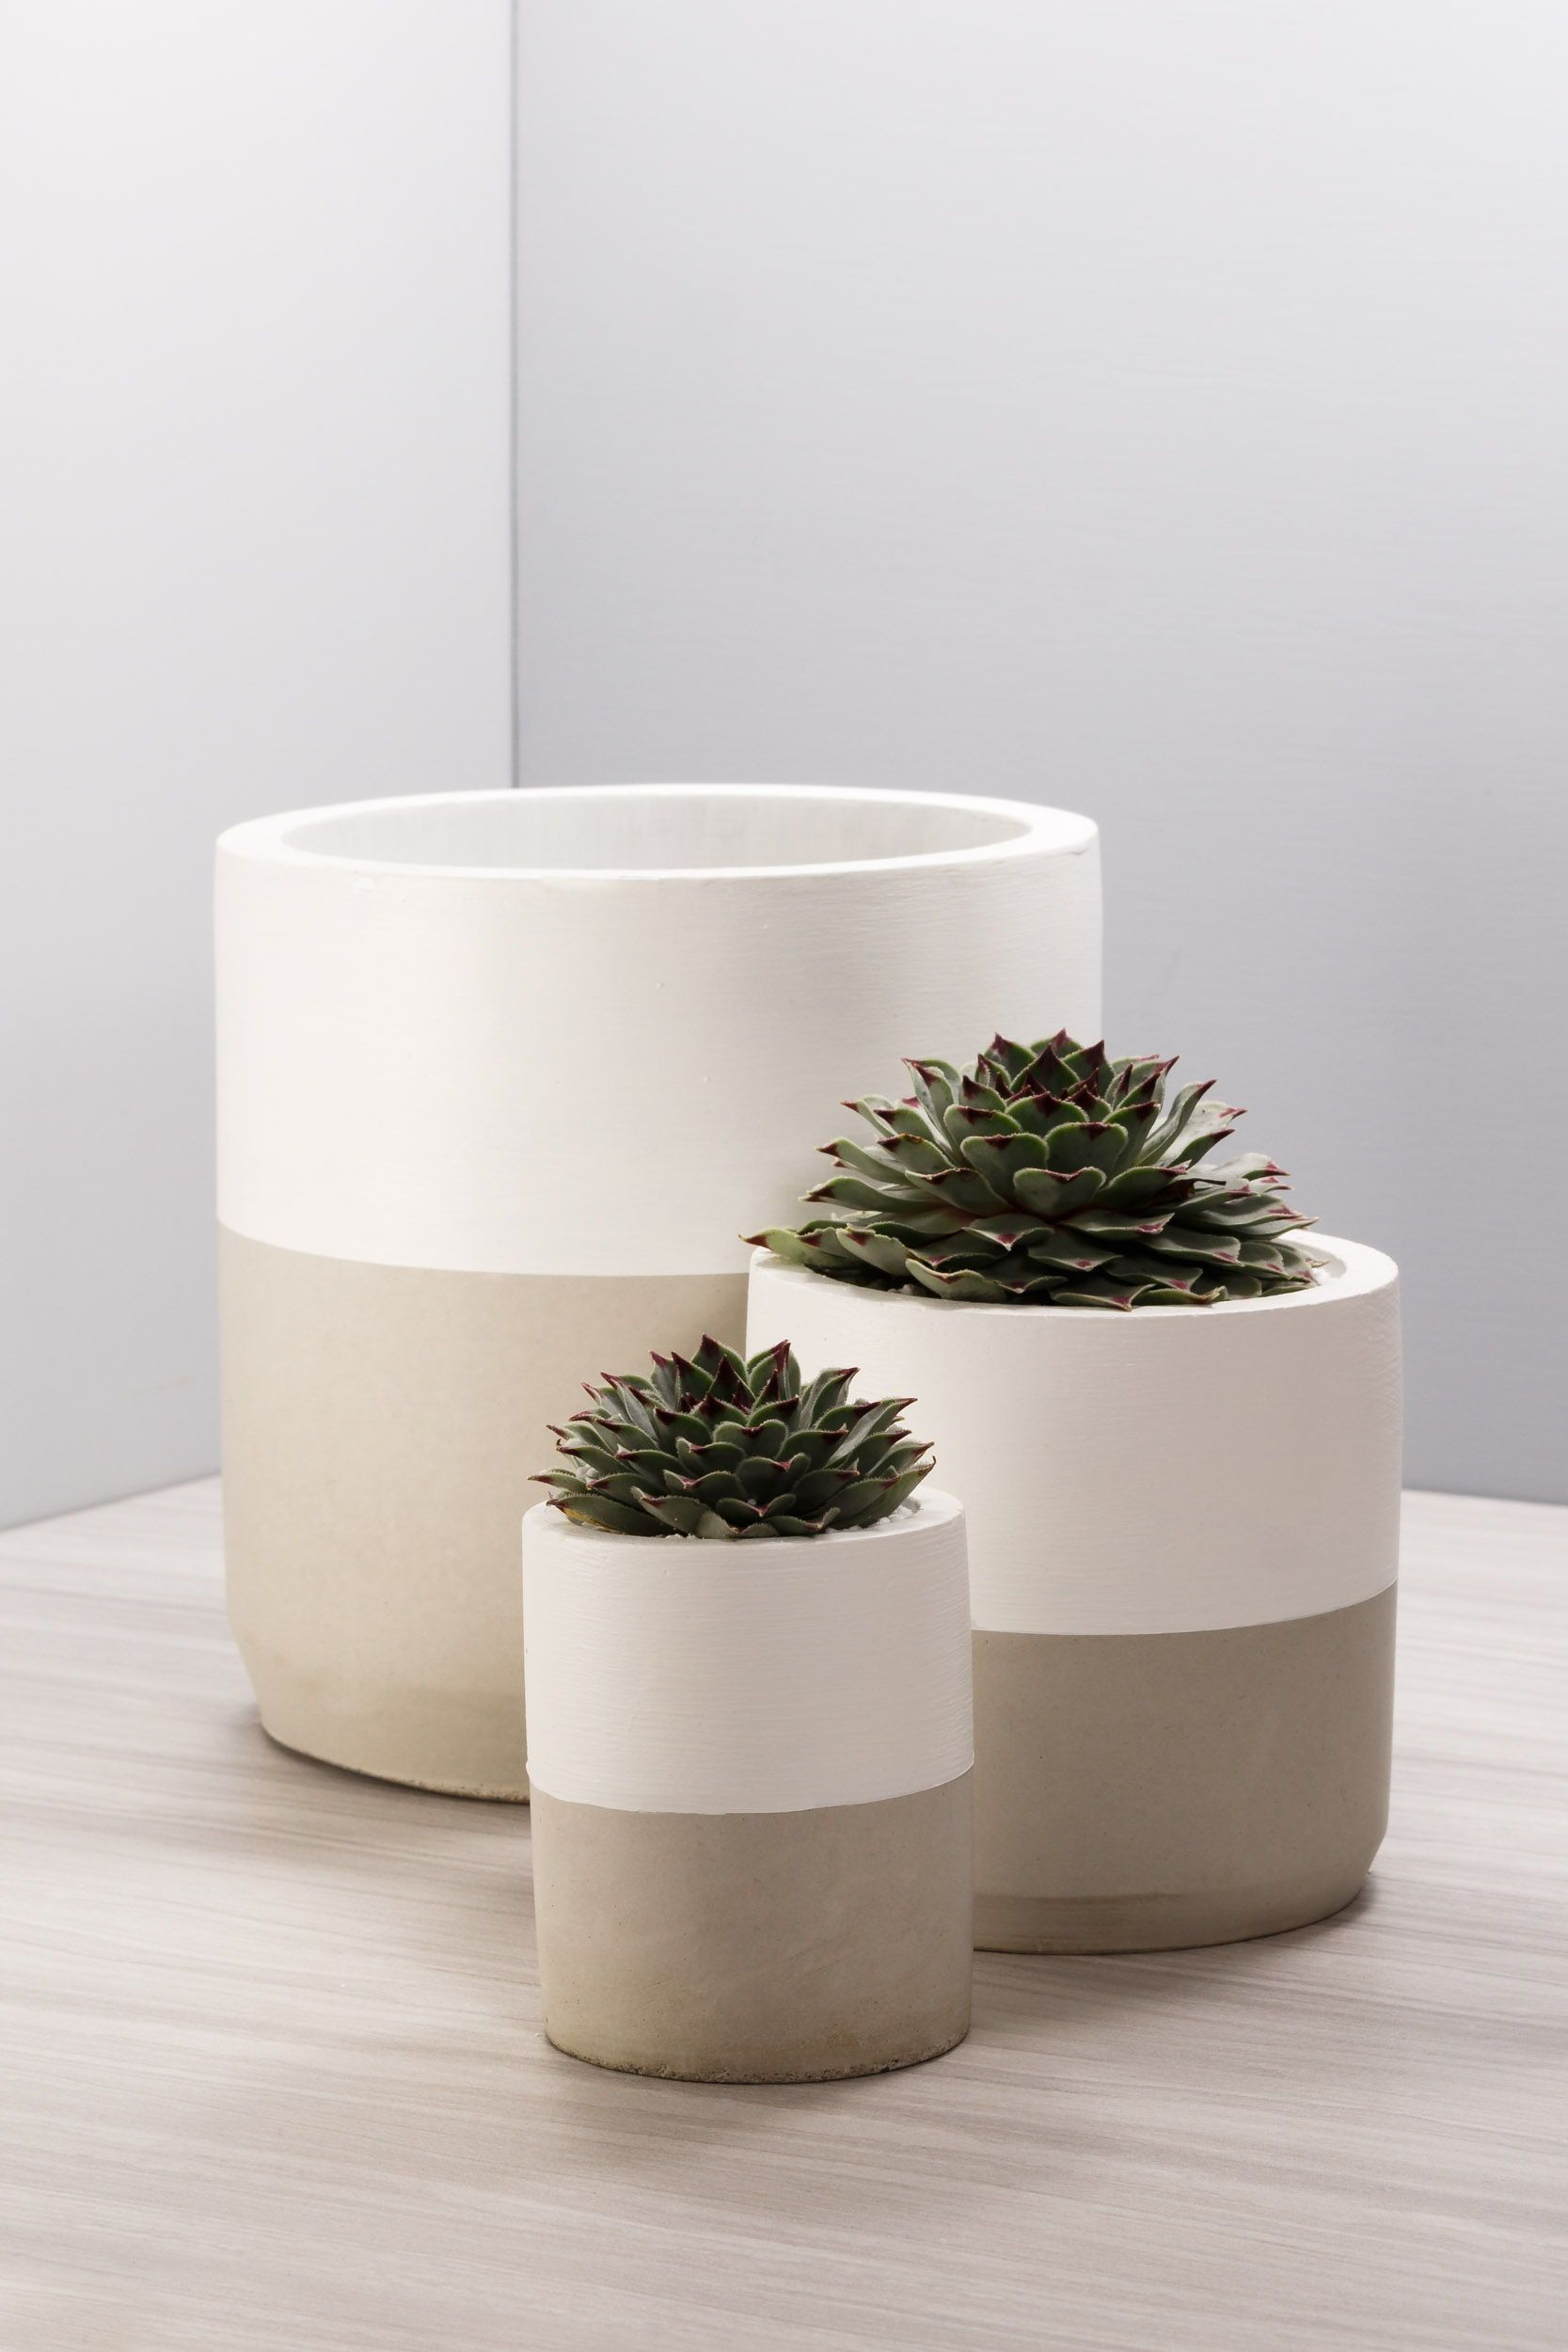 Concrete Succulent Planter Indoorplanter Concreteplanter Cement Modern Unique Artesanato De Vaso Planta De Decoracao Interior Decoracao Da Casa Artesanal